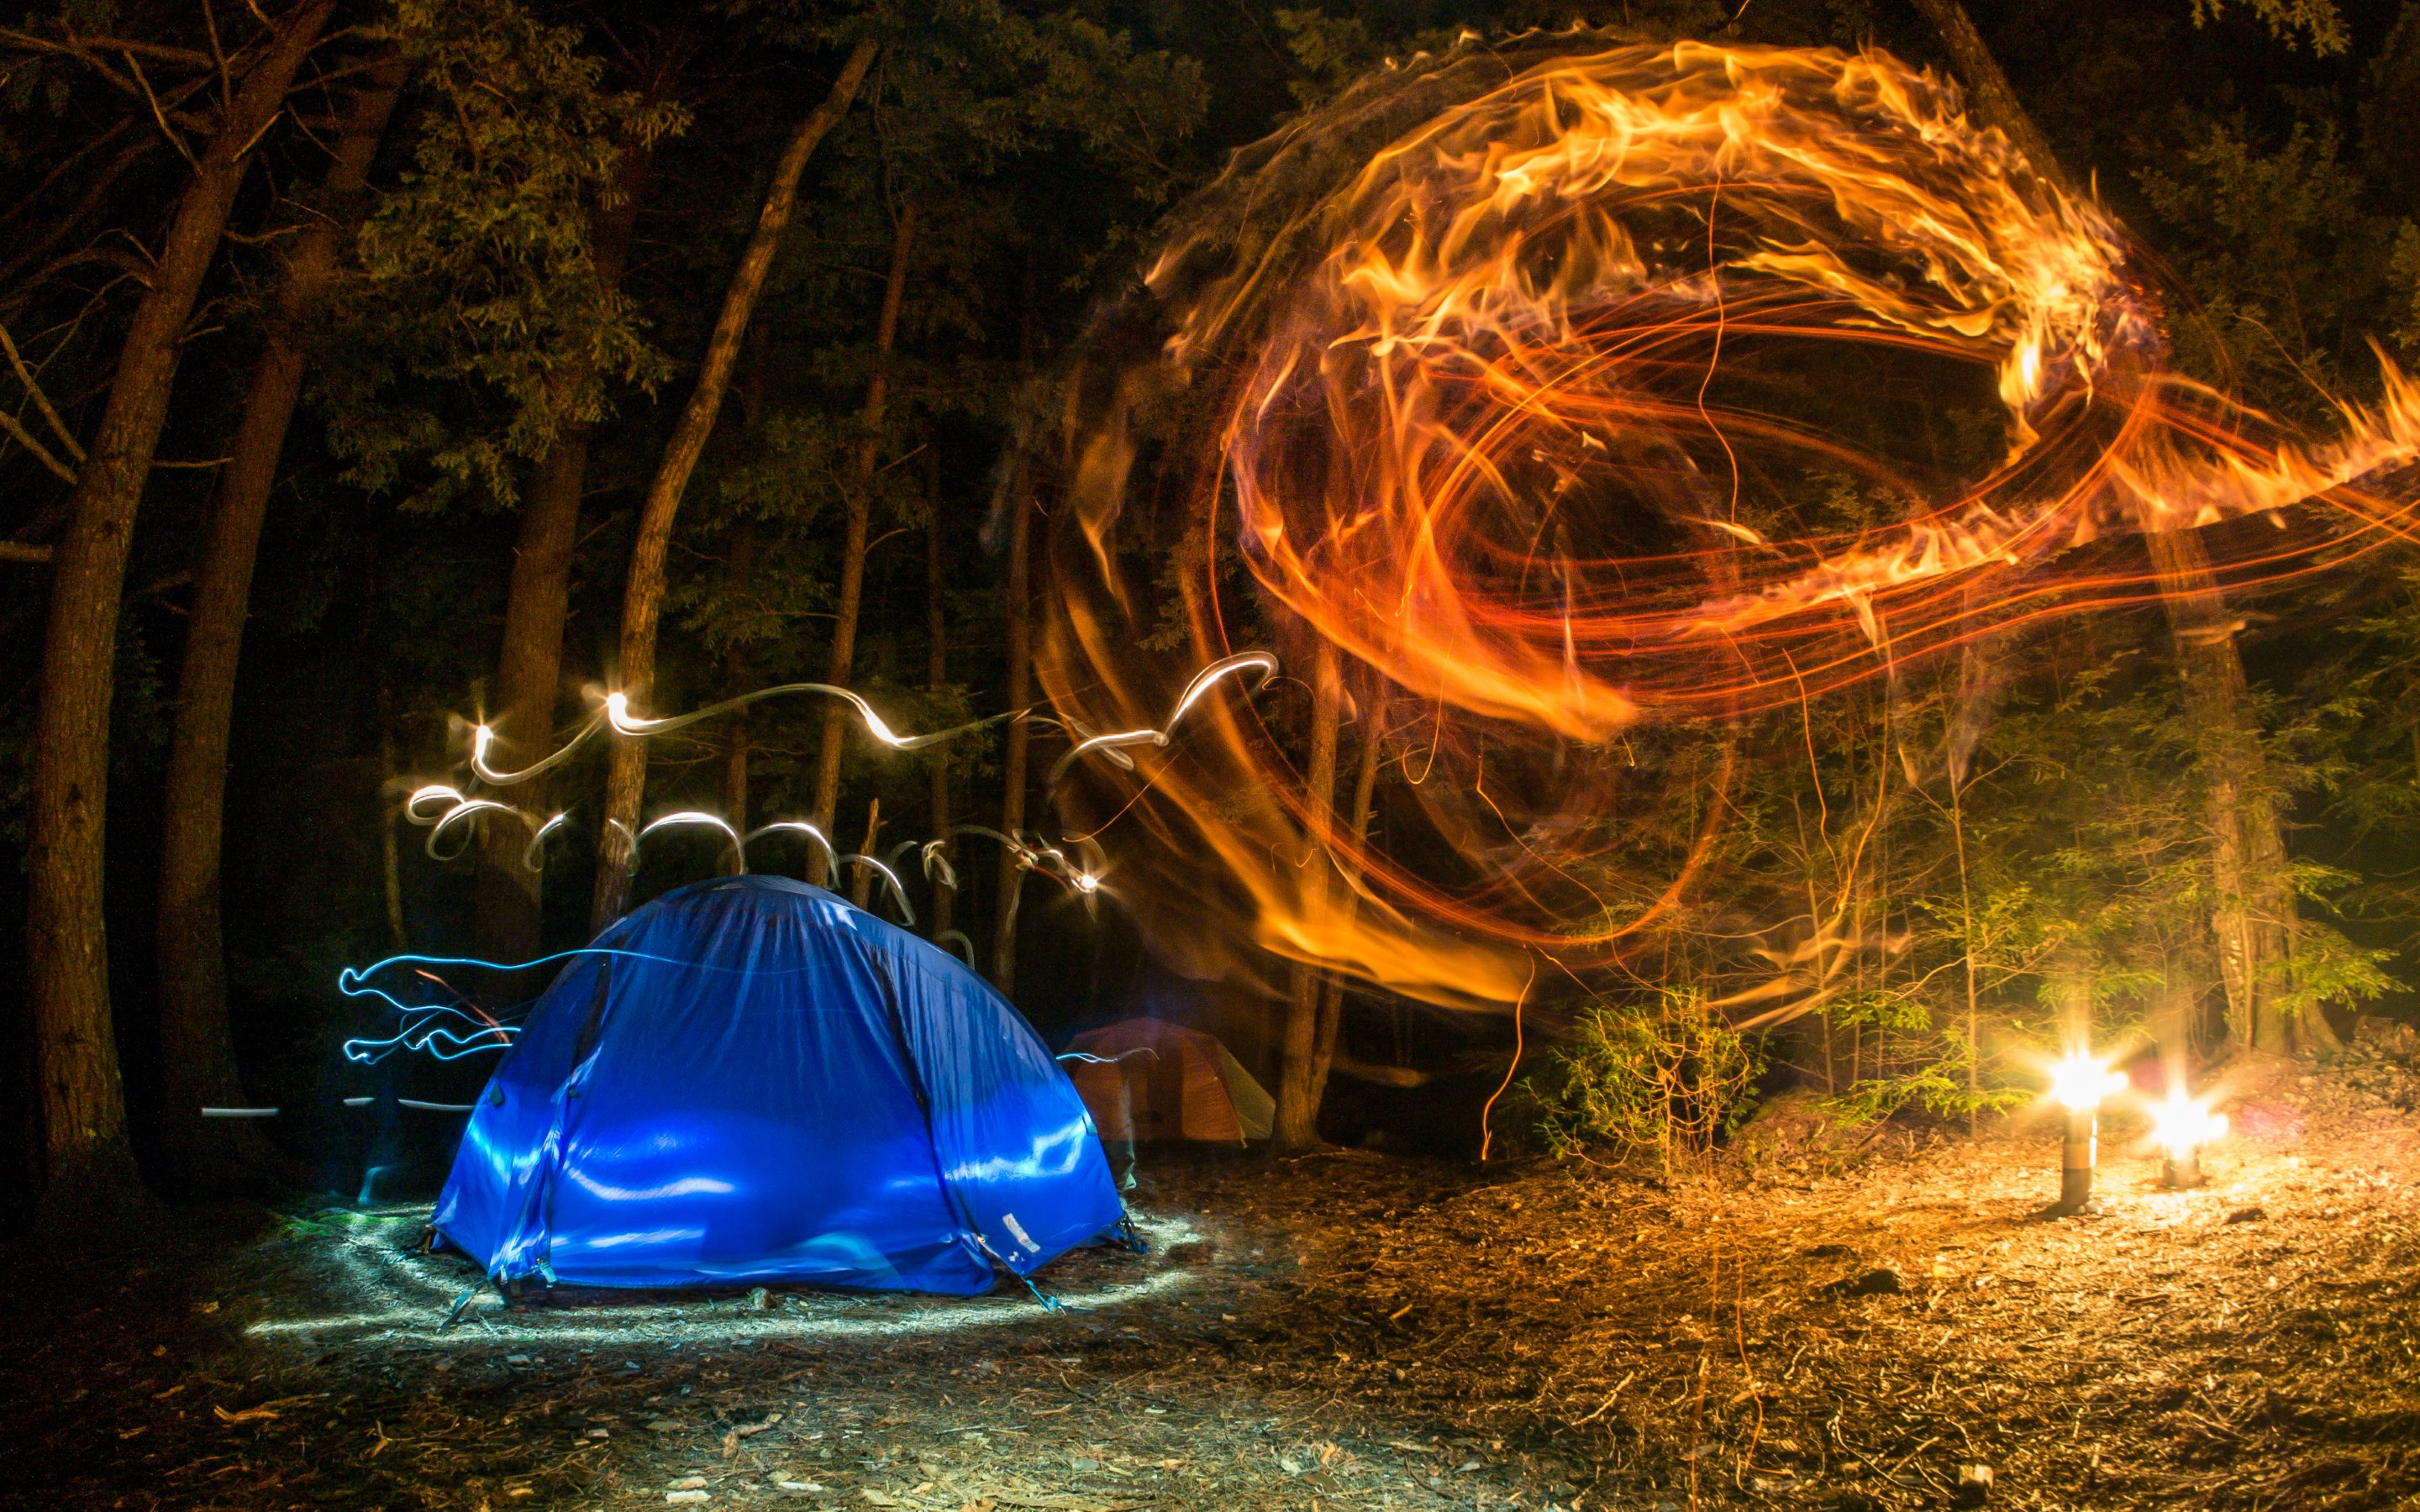 camping forest night lights creativity hd wallpapers